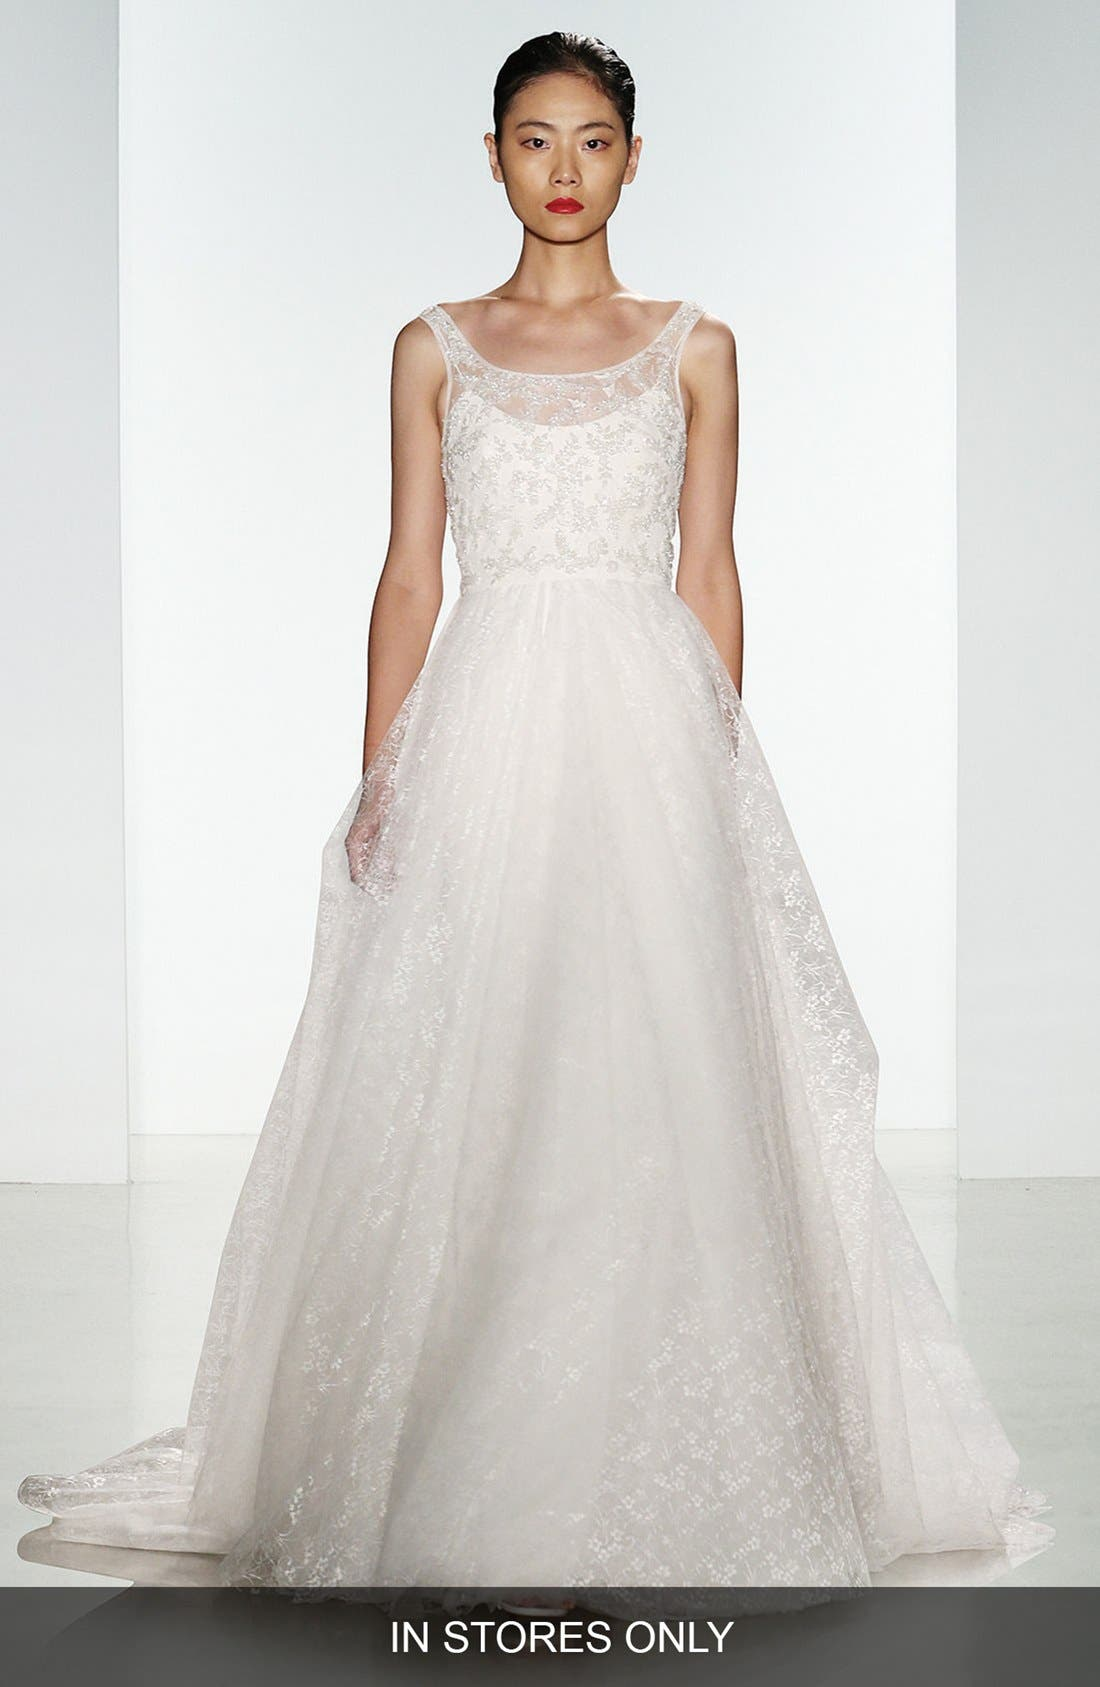 CHRISTOS BRIDAL 'Claire' Beaded Chantilly Lace & Floral